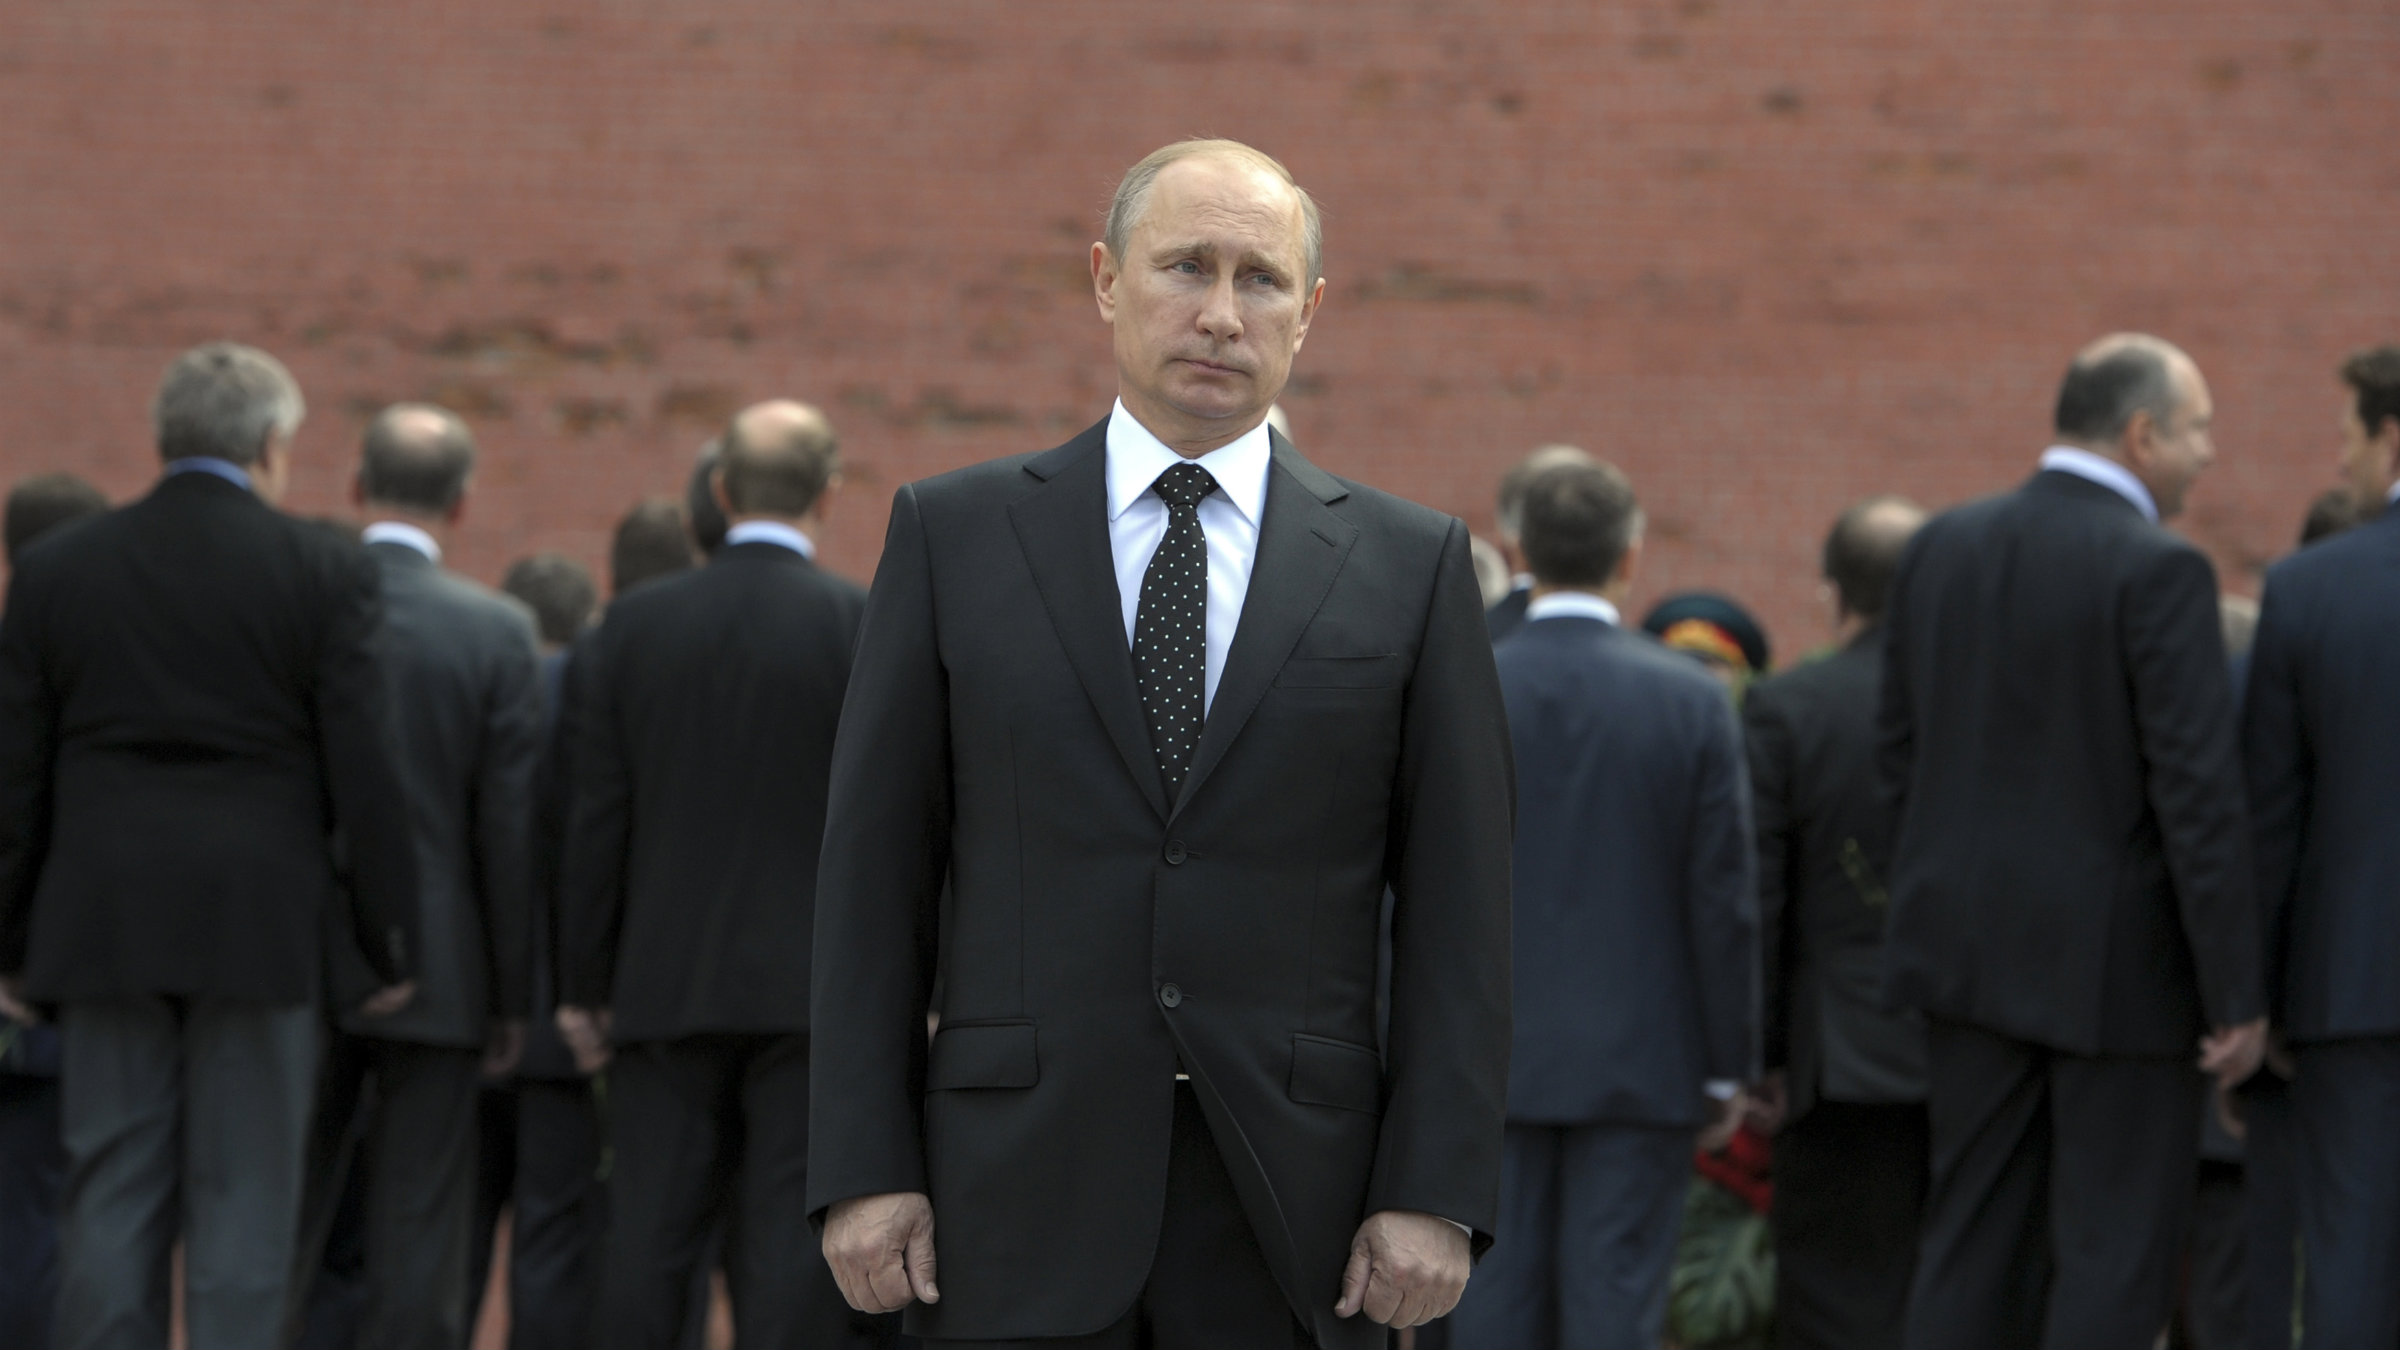 Russia's President Vladimir Putin stands alone at a ceremony outside the Kremlin in Moscow.